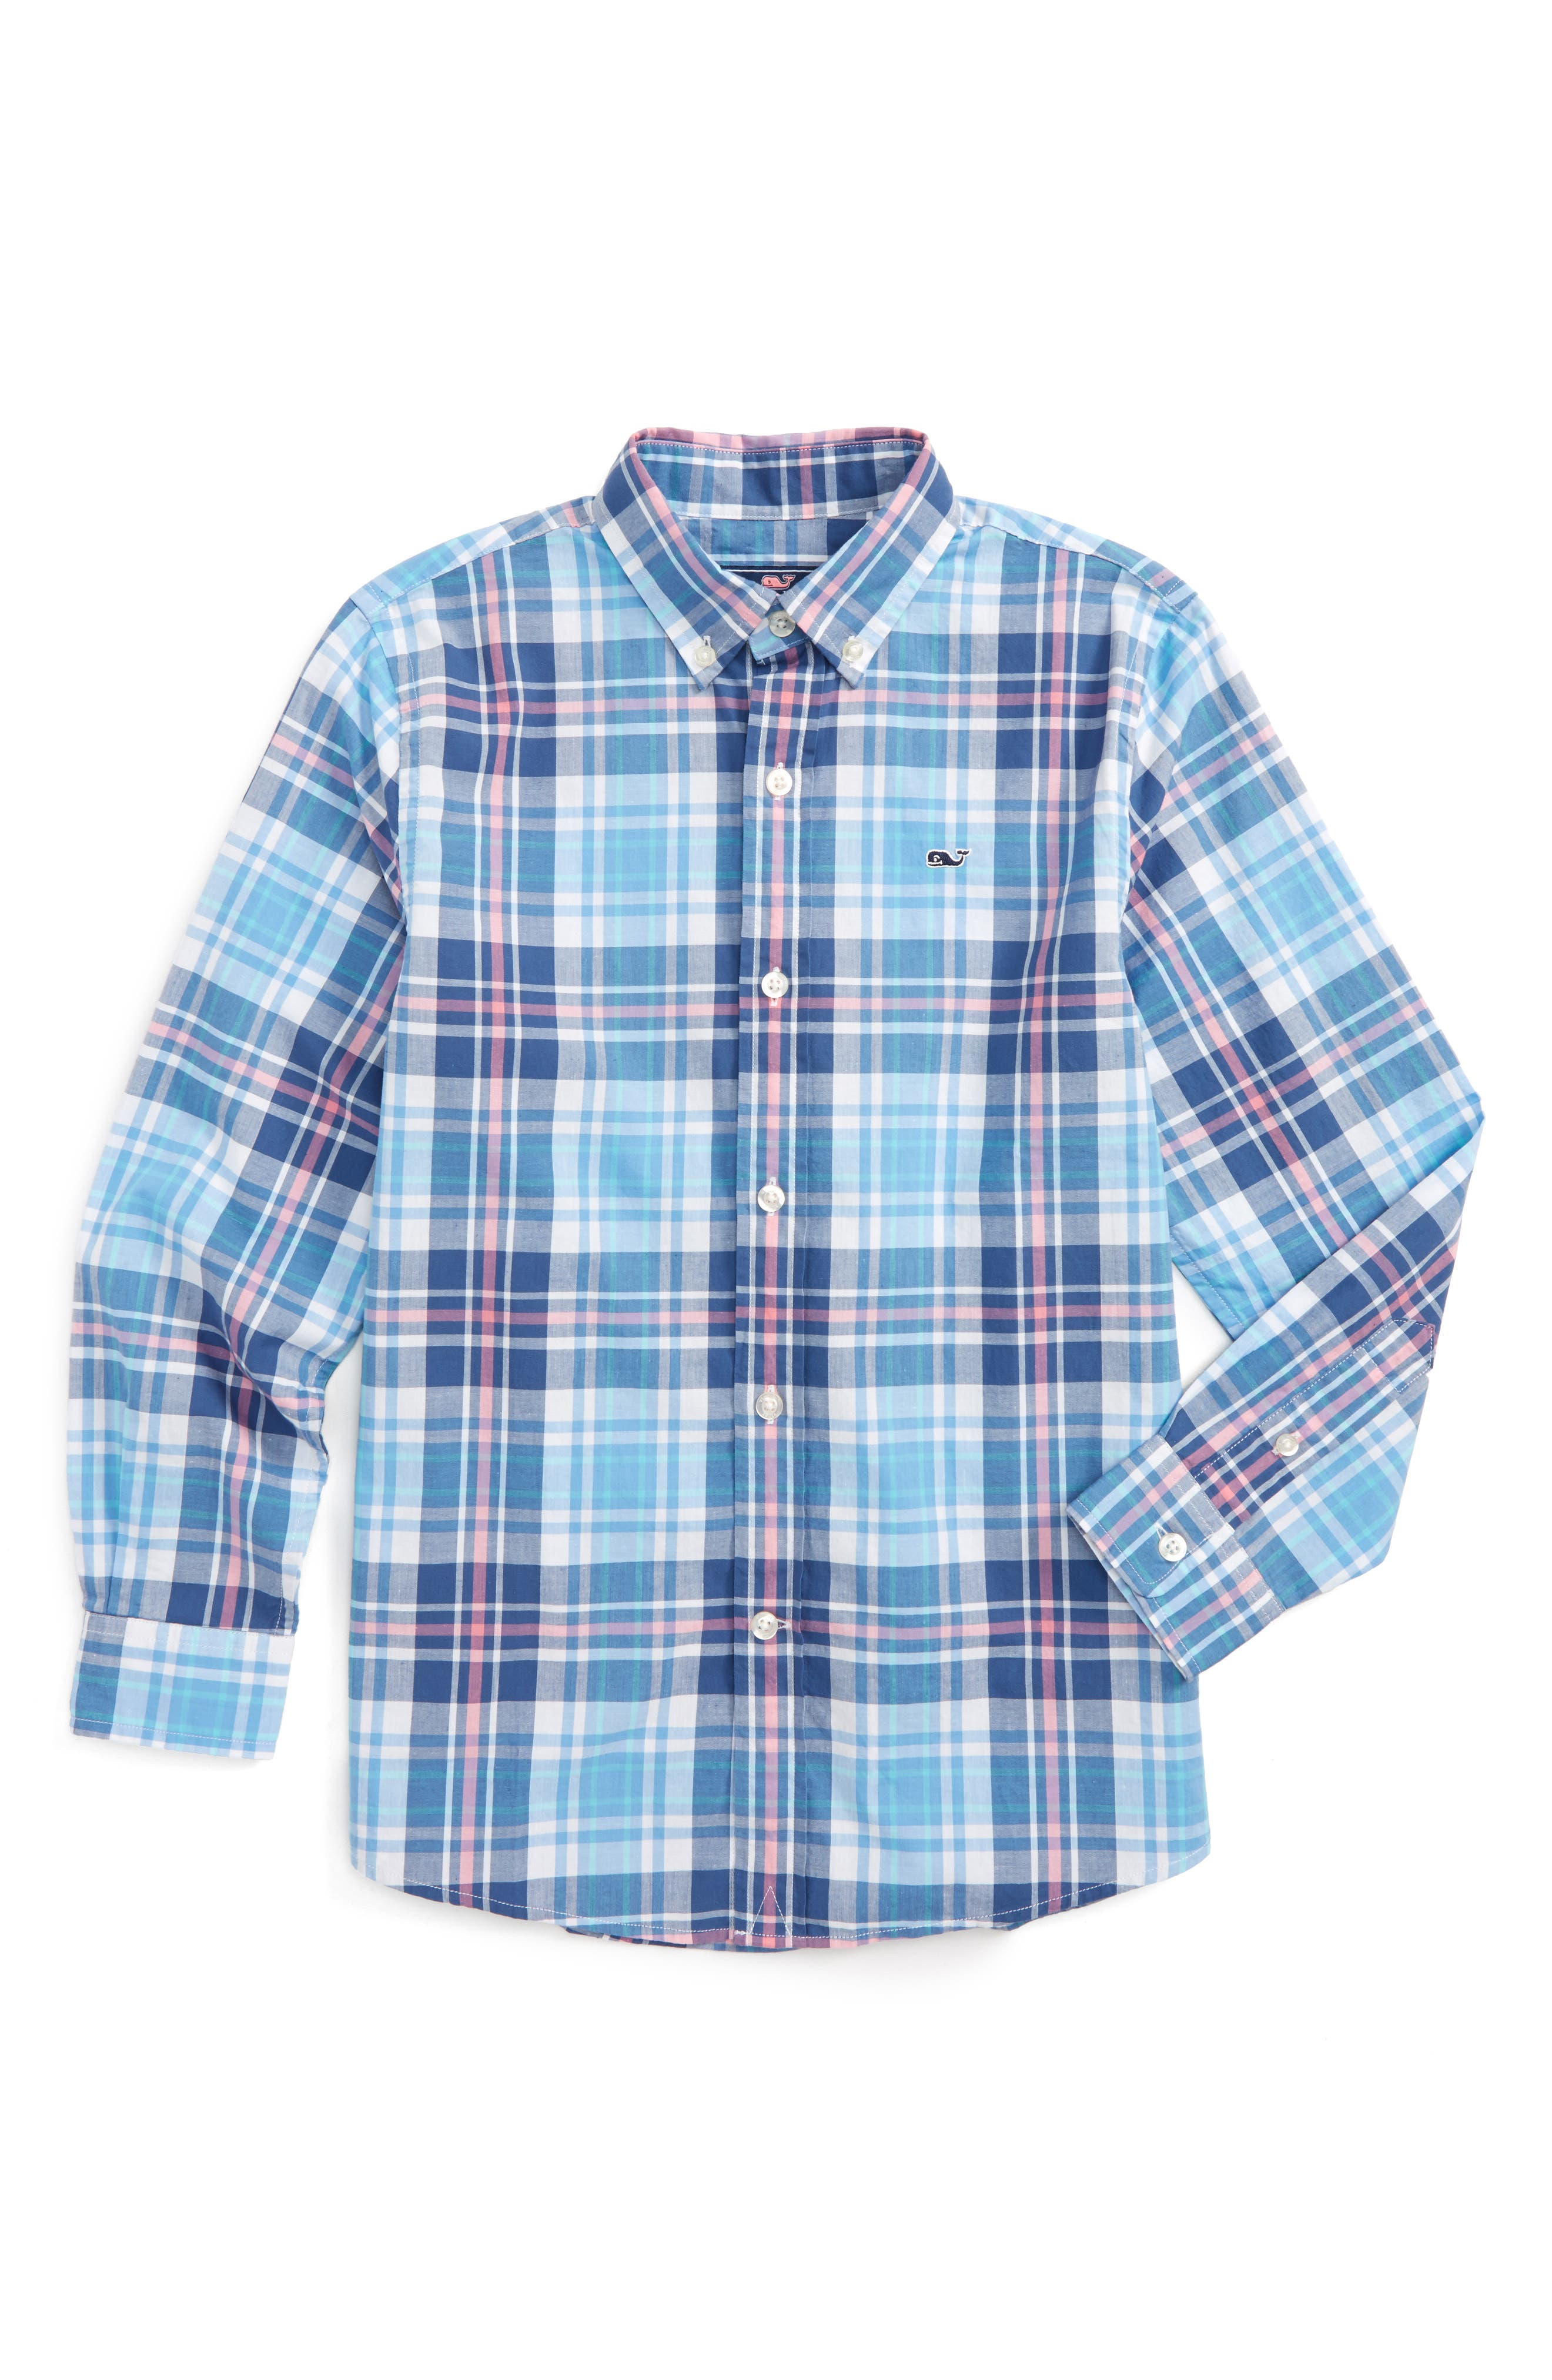 Fort Sumter Plaid Whale Shirt,                             Main thumbnail 1, color,                             406